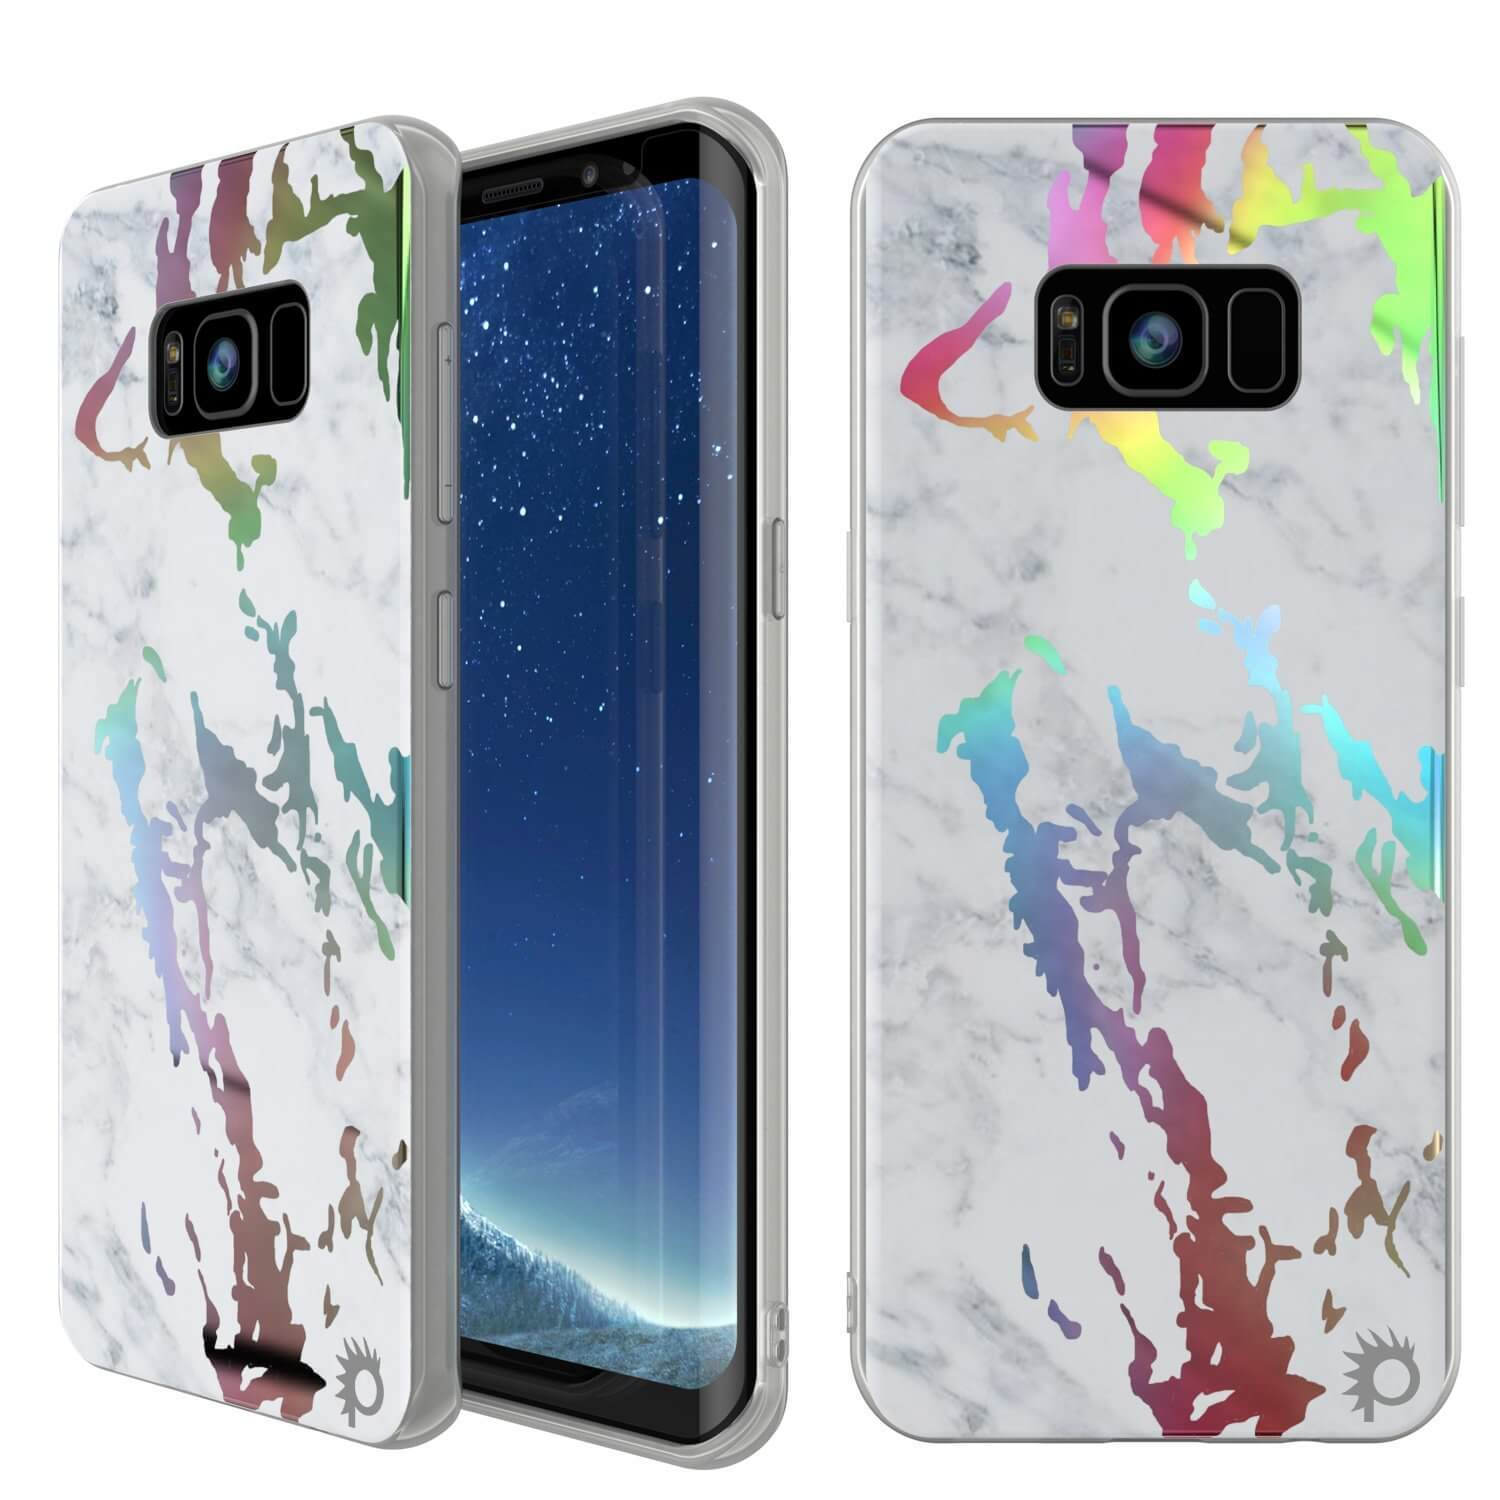 Punkcase Galaxy S8+ PLUS Marble Case, Protective Full Body Cover W/PunkShield Screen Protector (Blanco Marmo)